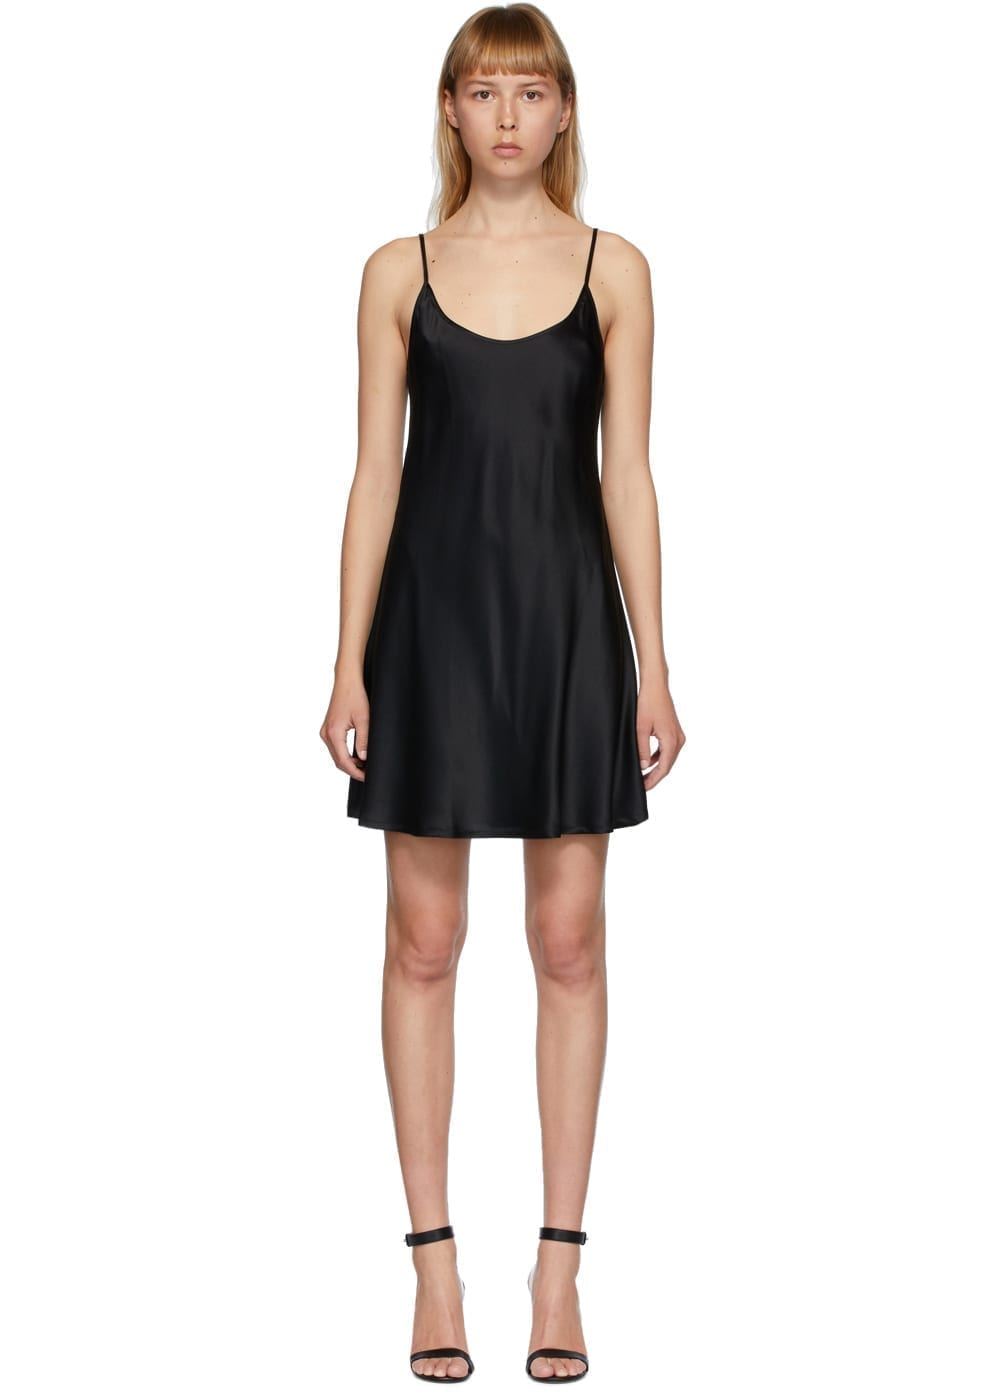 LA PERLA Black Silk Mini Dress